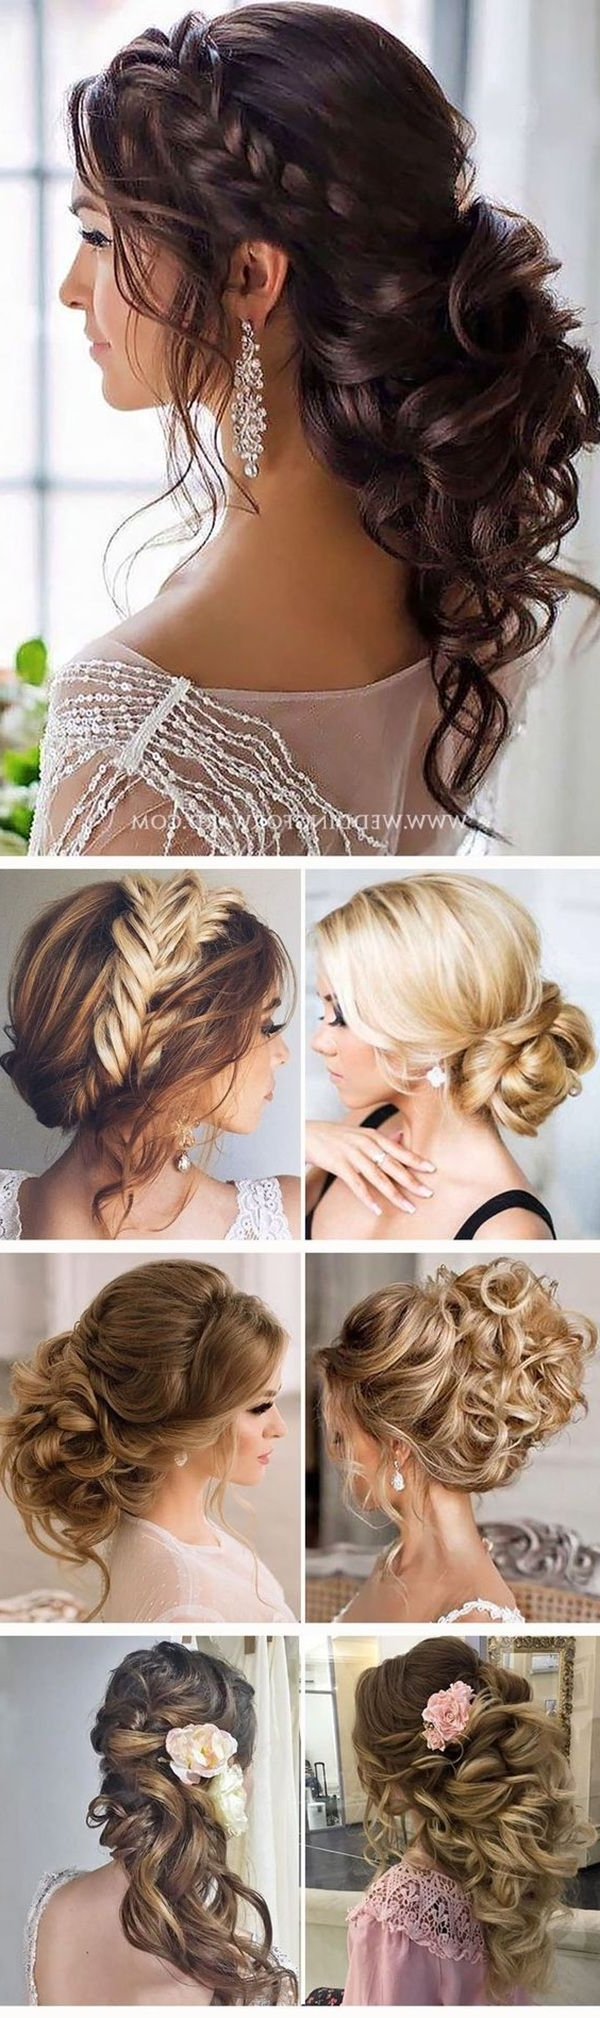 70 Best Destination Wedding Hair Accessories Images On Pinterest Within Long Hair Updo Accessories (View 4 of 15)